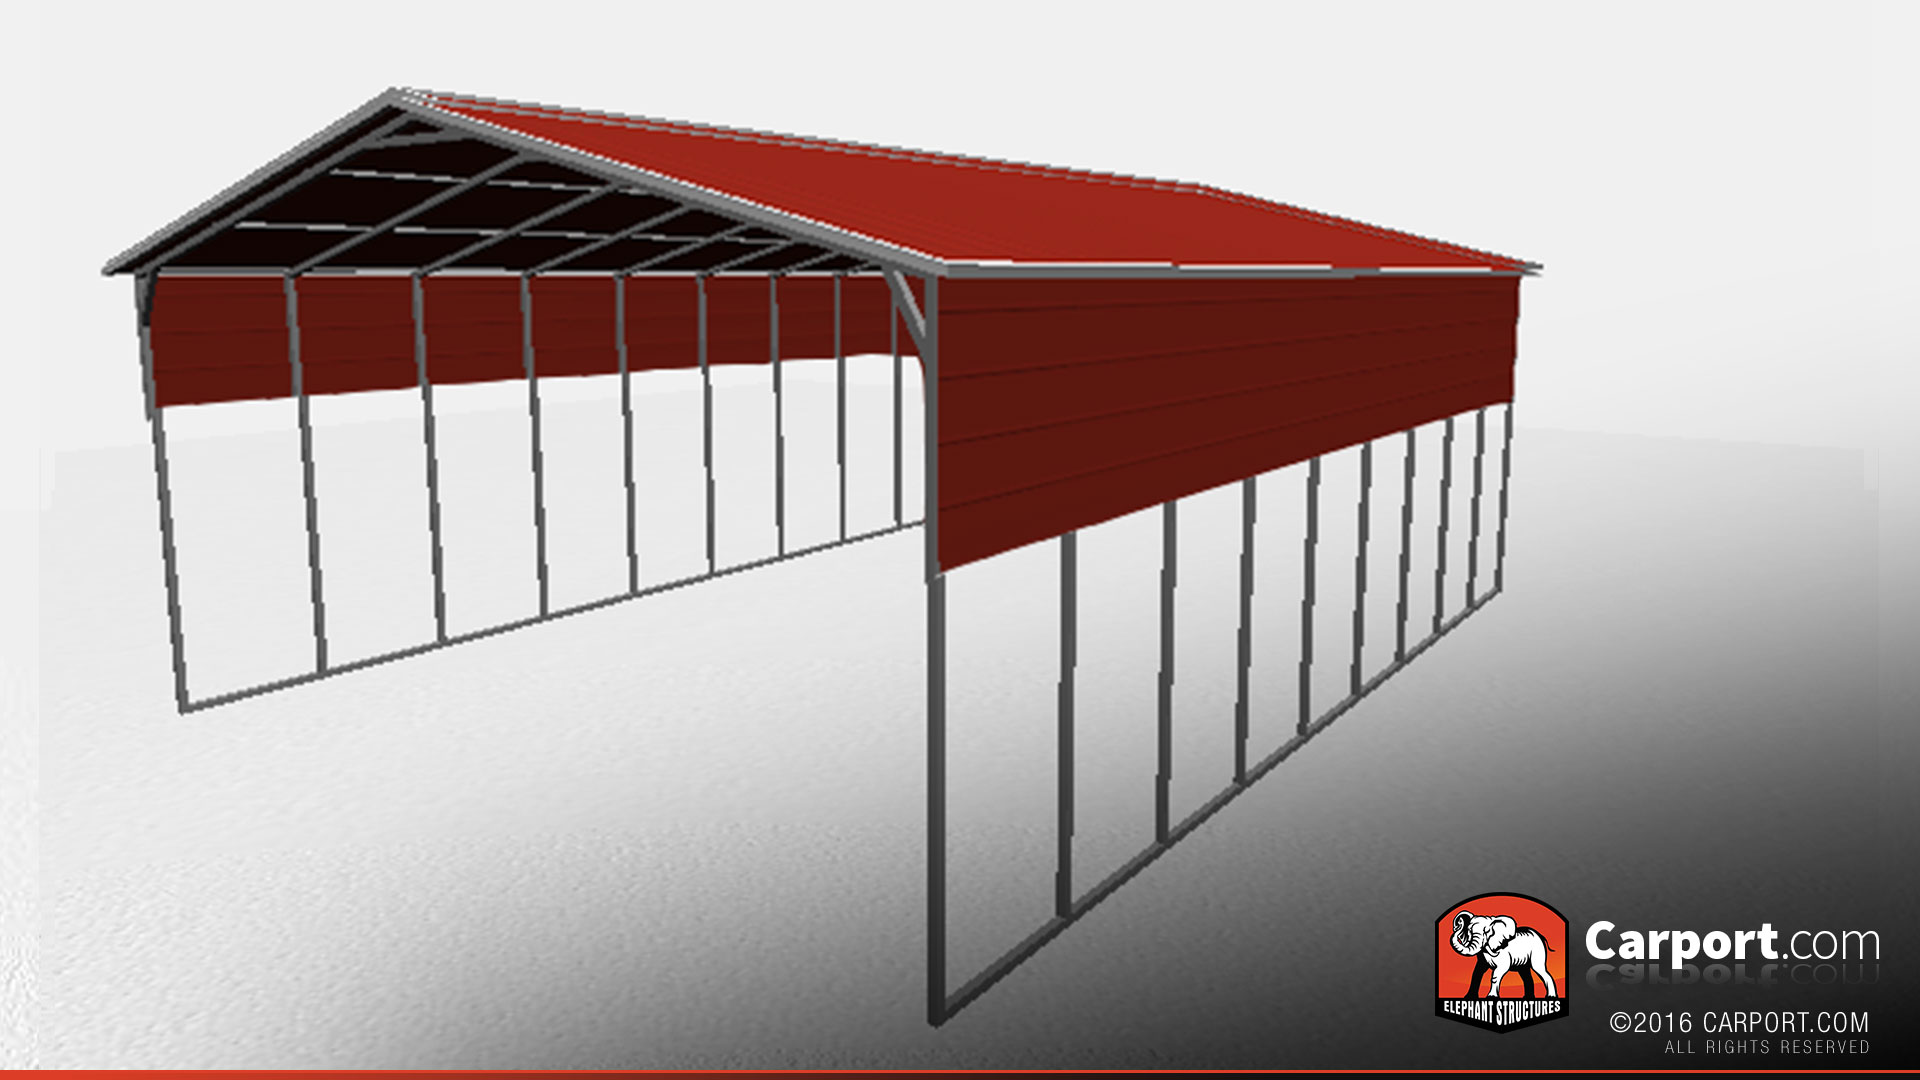 Bass Boat Shelters : Metal boat shelter with vertical roof